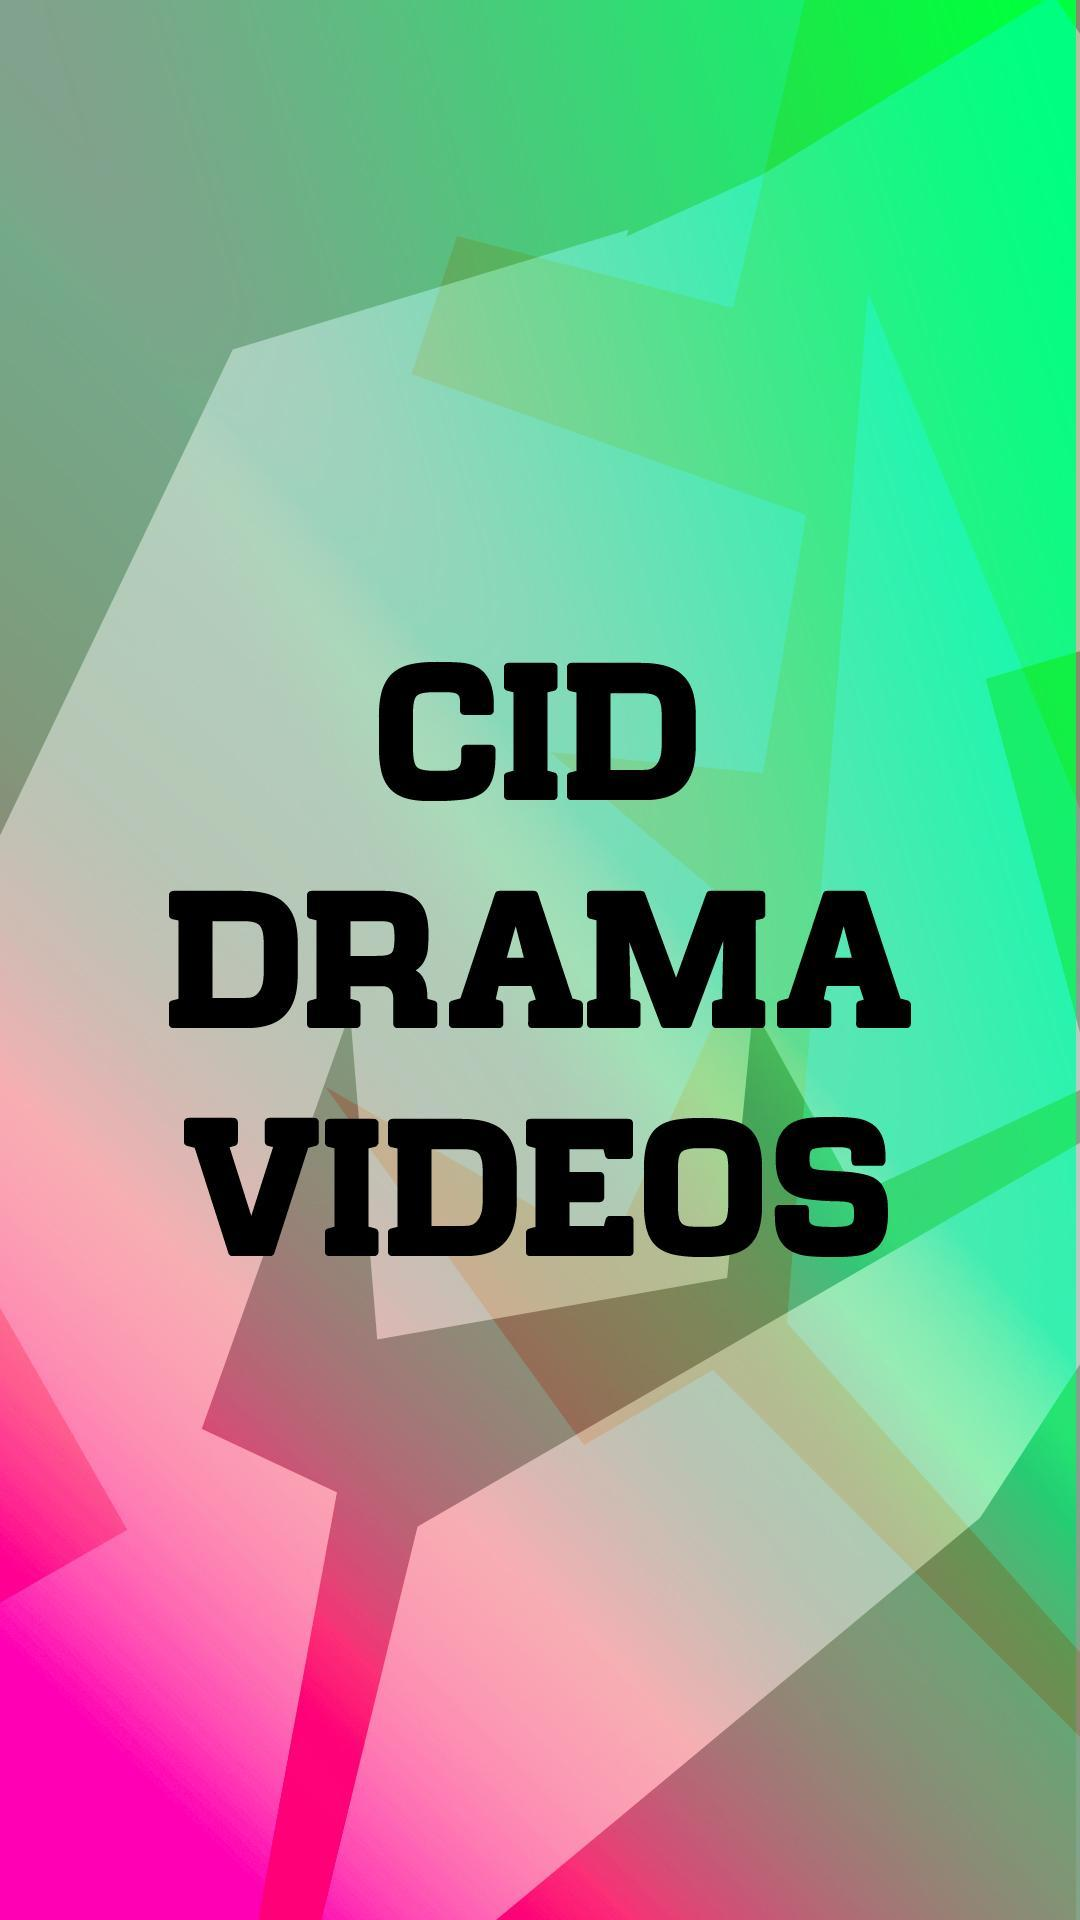 Episodes For CID for Android - APK Download